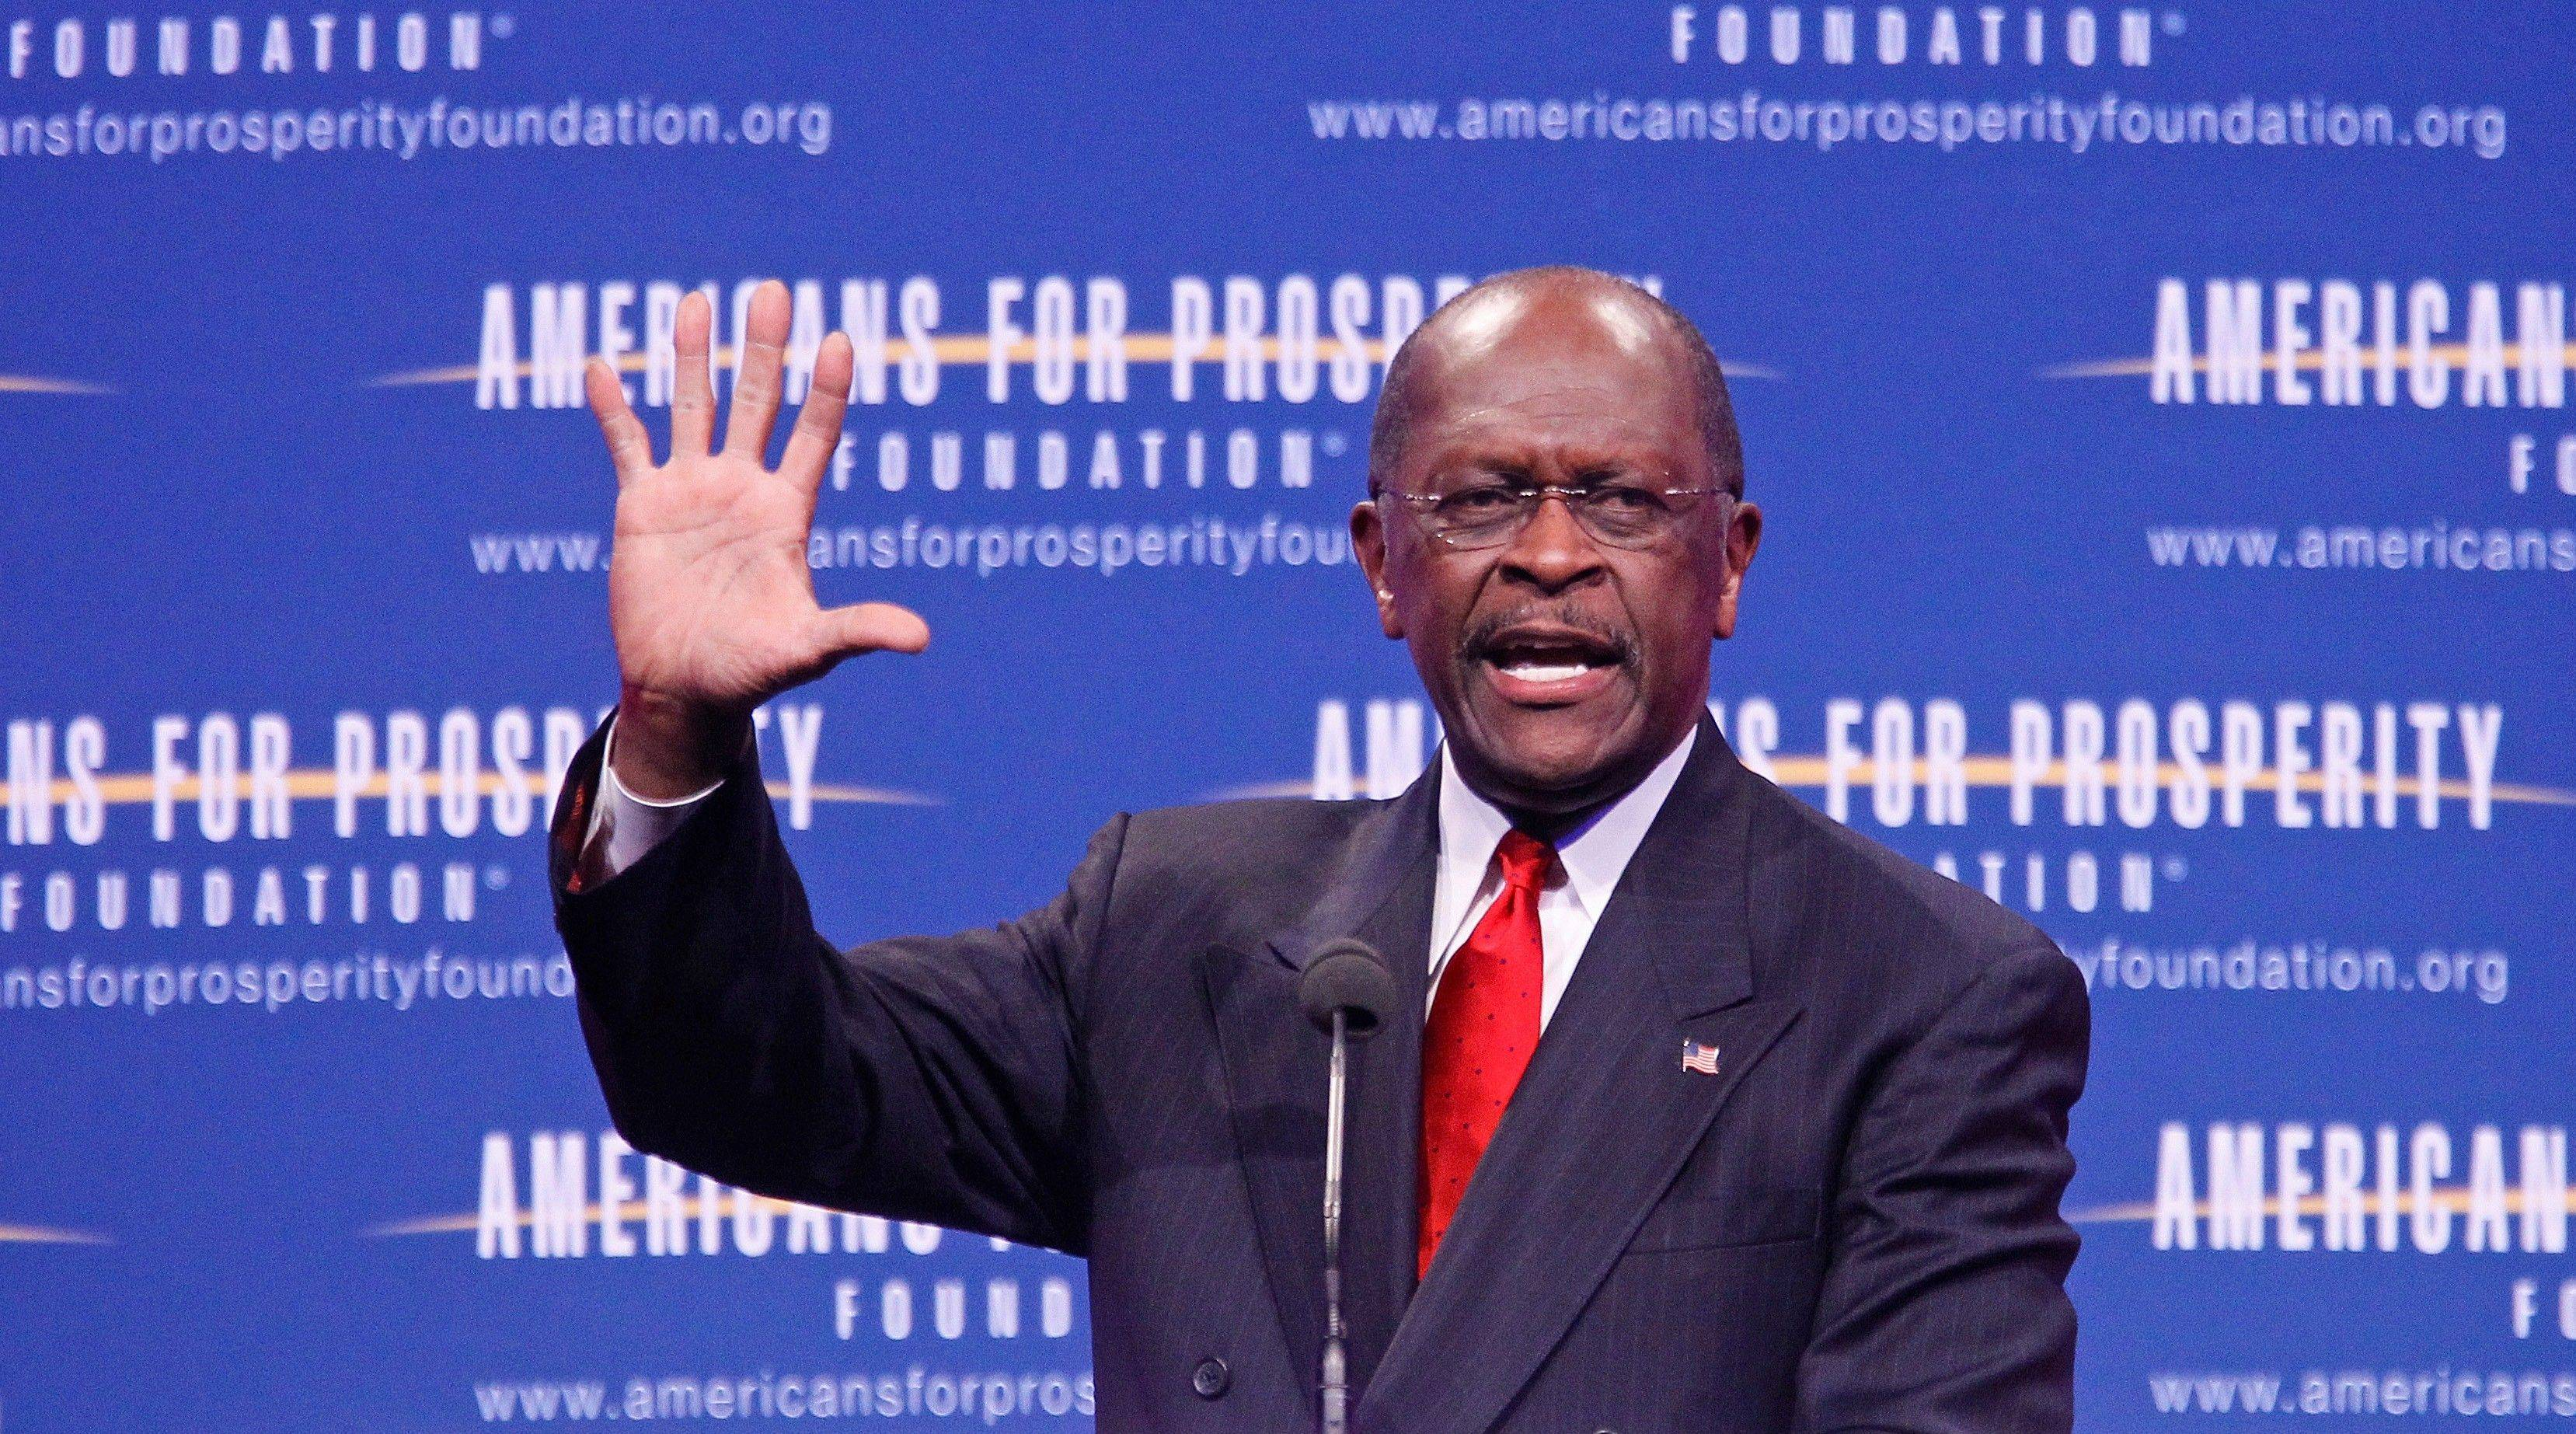 Cain says he won't answer harassment questions